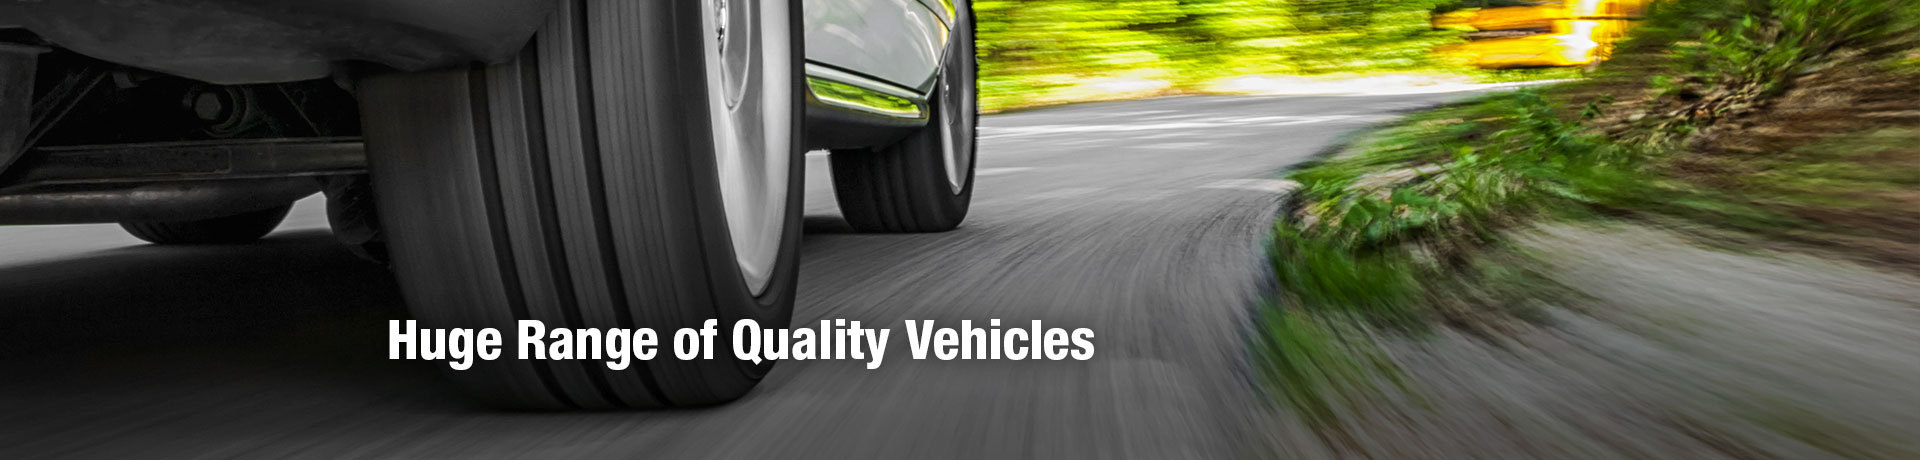 Huge Range of Quality Vehicles